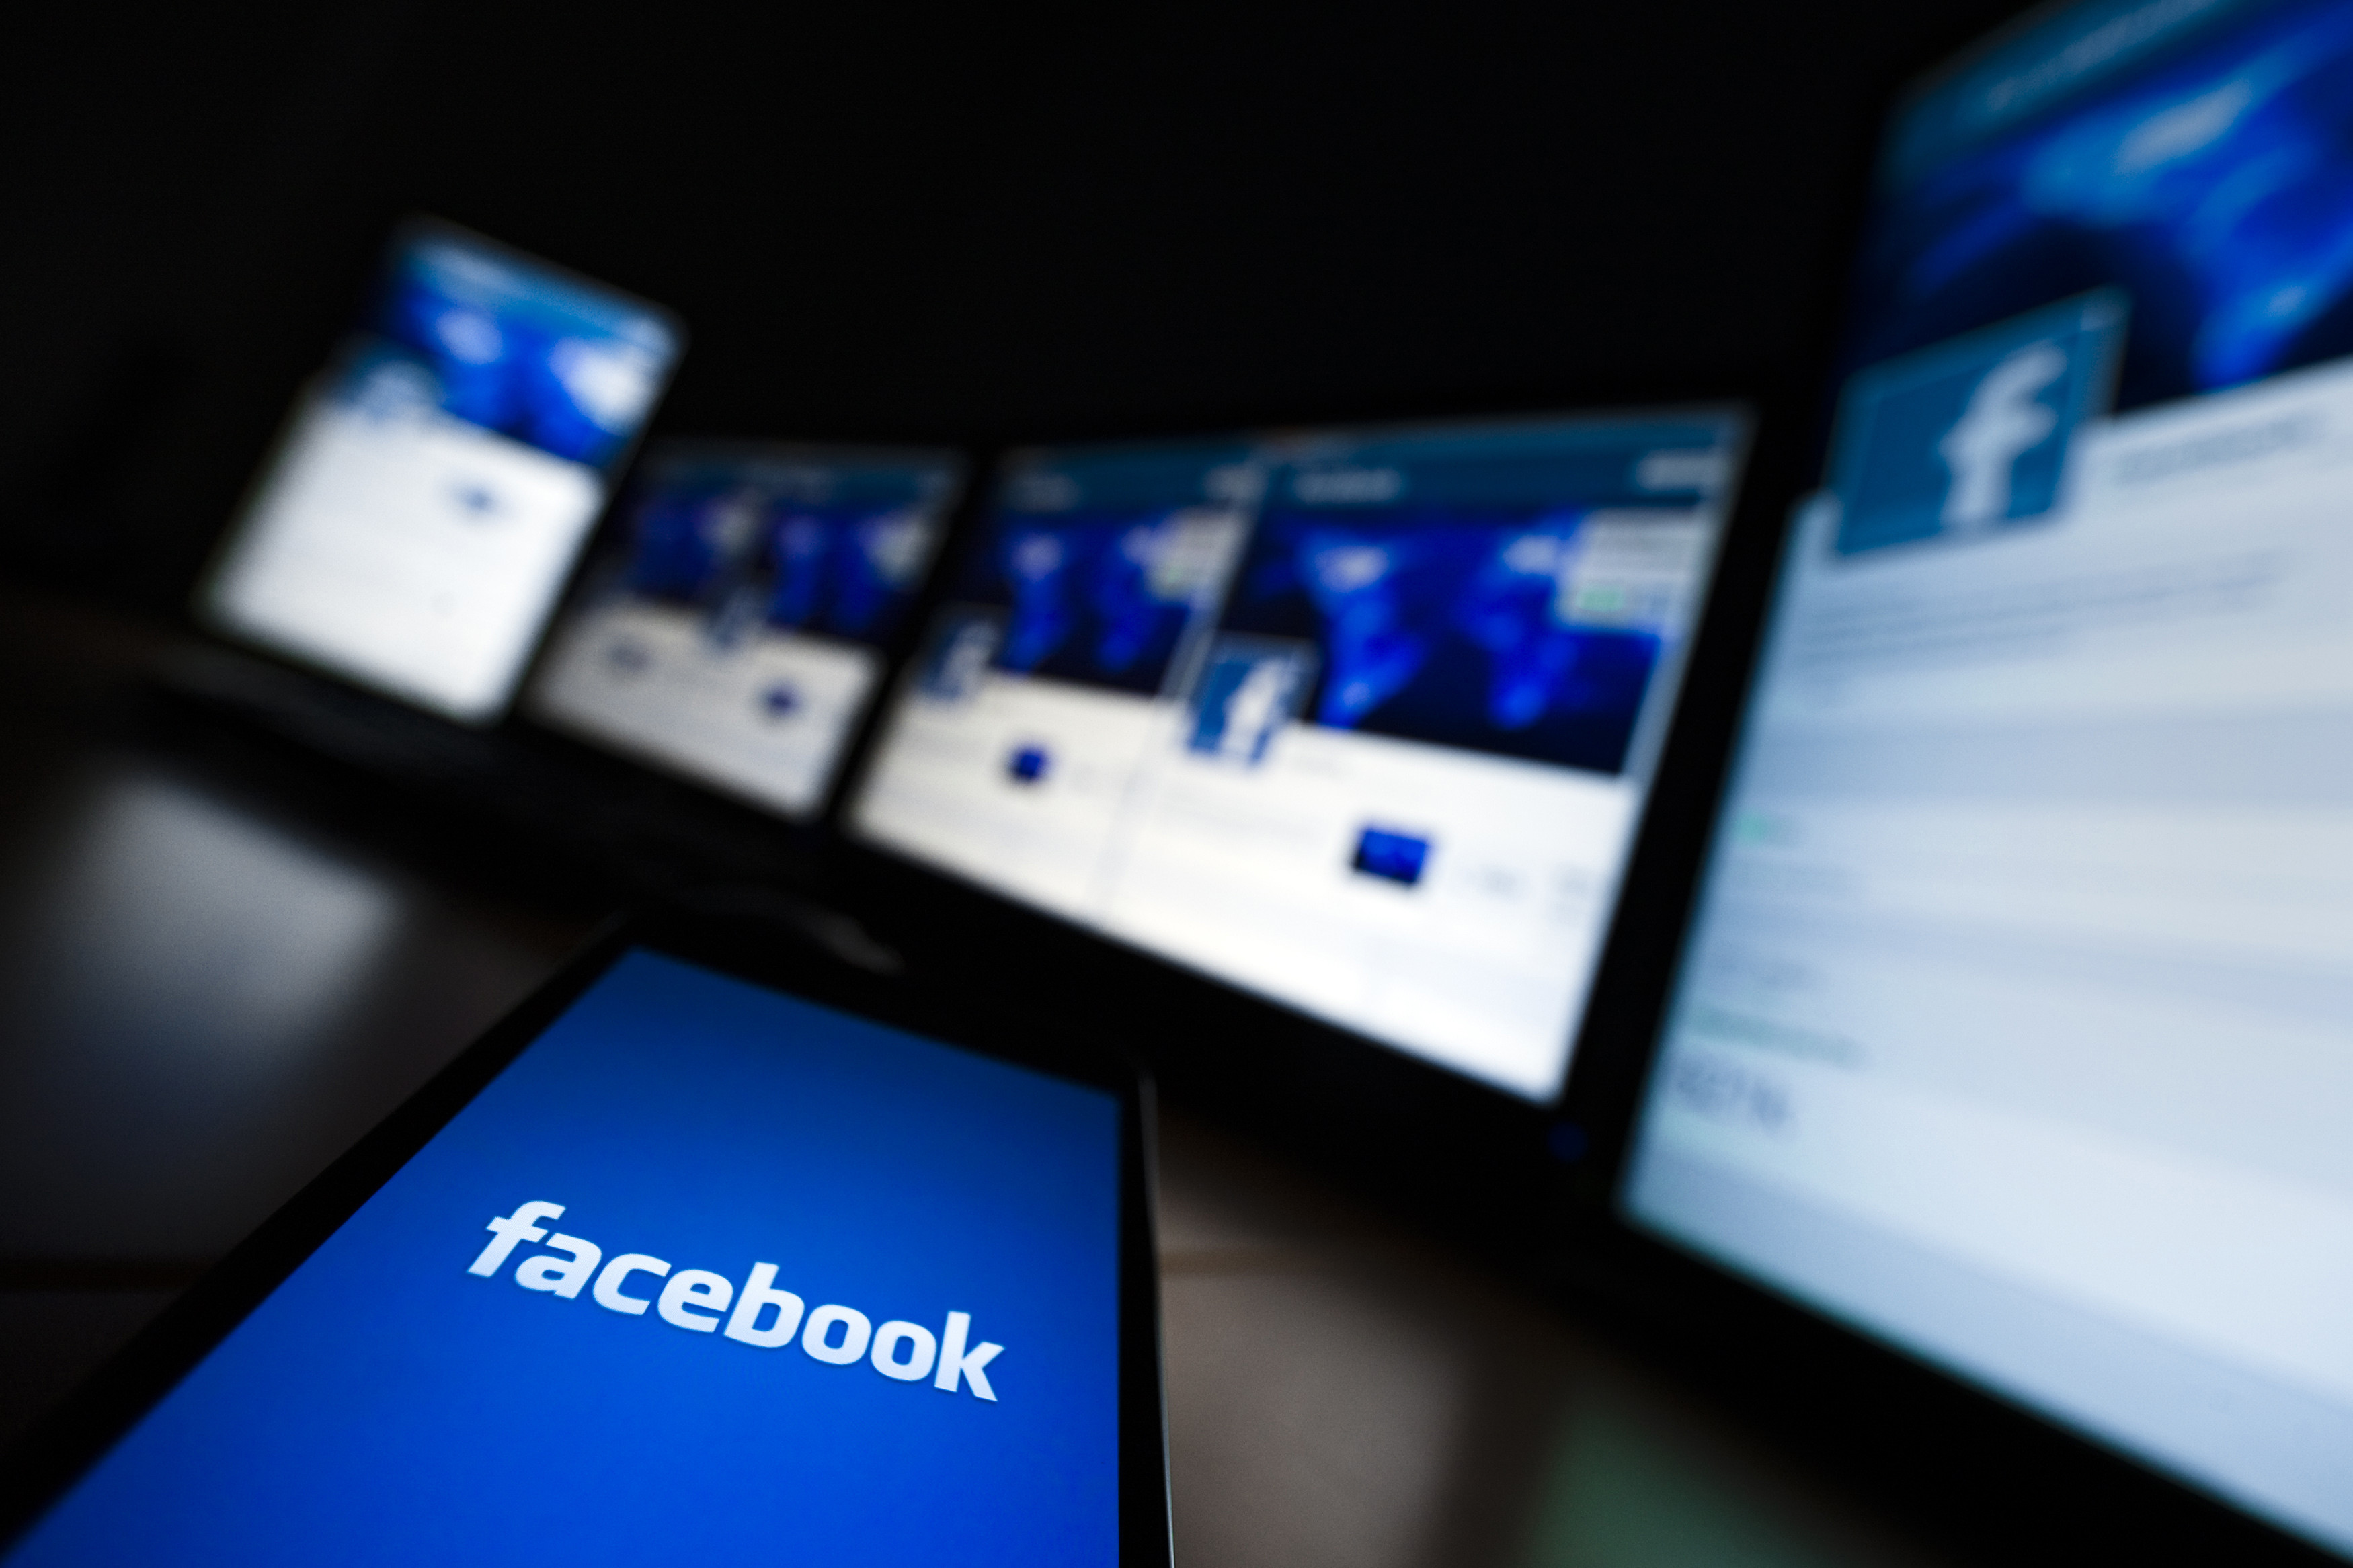 The loading screen of the Facebook application on a mobile phone is seen in this photo illustration taken in Lavigny May 16, 2012. Facebook Inc increased the size of its initial public offering by almost 25 percent, and could raise as much as $16 billion as strong investor demand for a share of the No.1 social network trumps debate about its long-term potential to make money. Facebook, founded eight years ago by Mark Zuckerberg in a Harvard dorm room, said on Wednesday it will add about 84 million shares to its IPO, floating about 421 million shares in an offering expected to be priced on Thursday. REUTERS/Valentin Flauraud (SWITZERLAND - Tags: BUSINESS SCIENCE TECHNOLOGY SOCIETY) - GM1E85H02ZT01